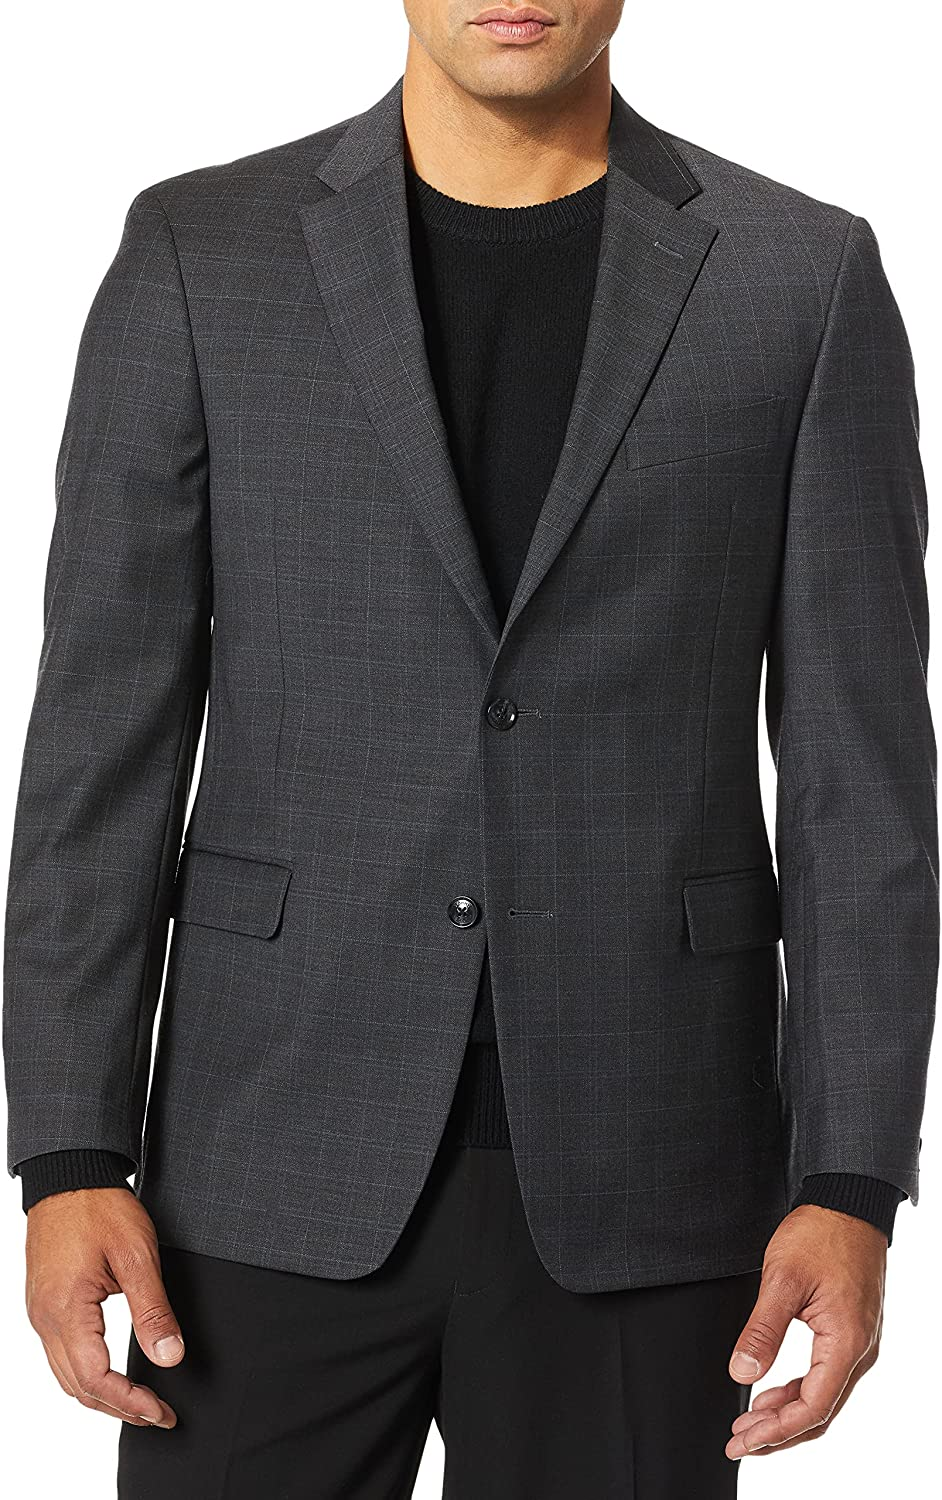 Tommy Hilfiger Men's Jacket Modern Fit Suit Separates with Stretch-Custom Jacket & Pant Size Selection, Charcoal Plaid, 42S